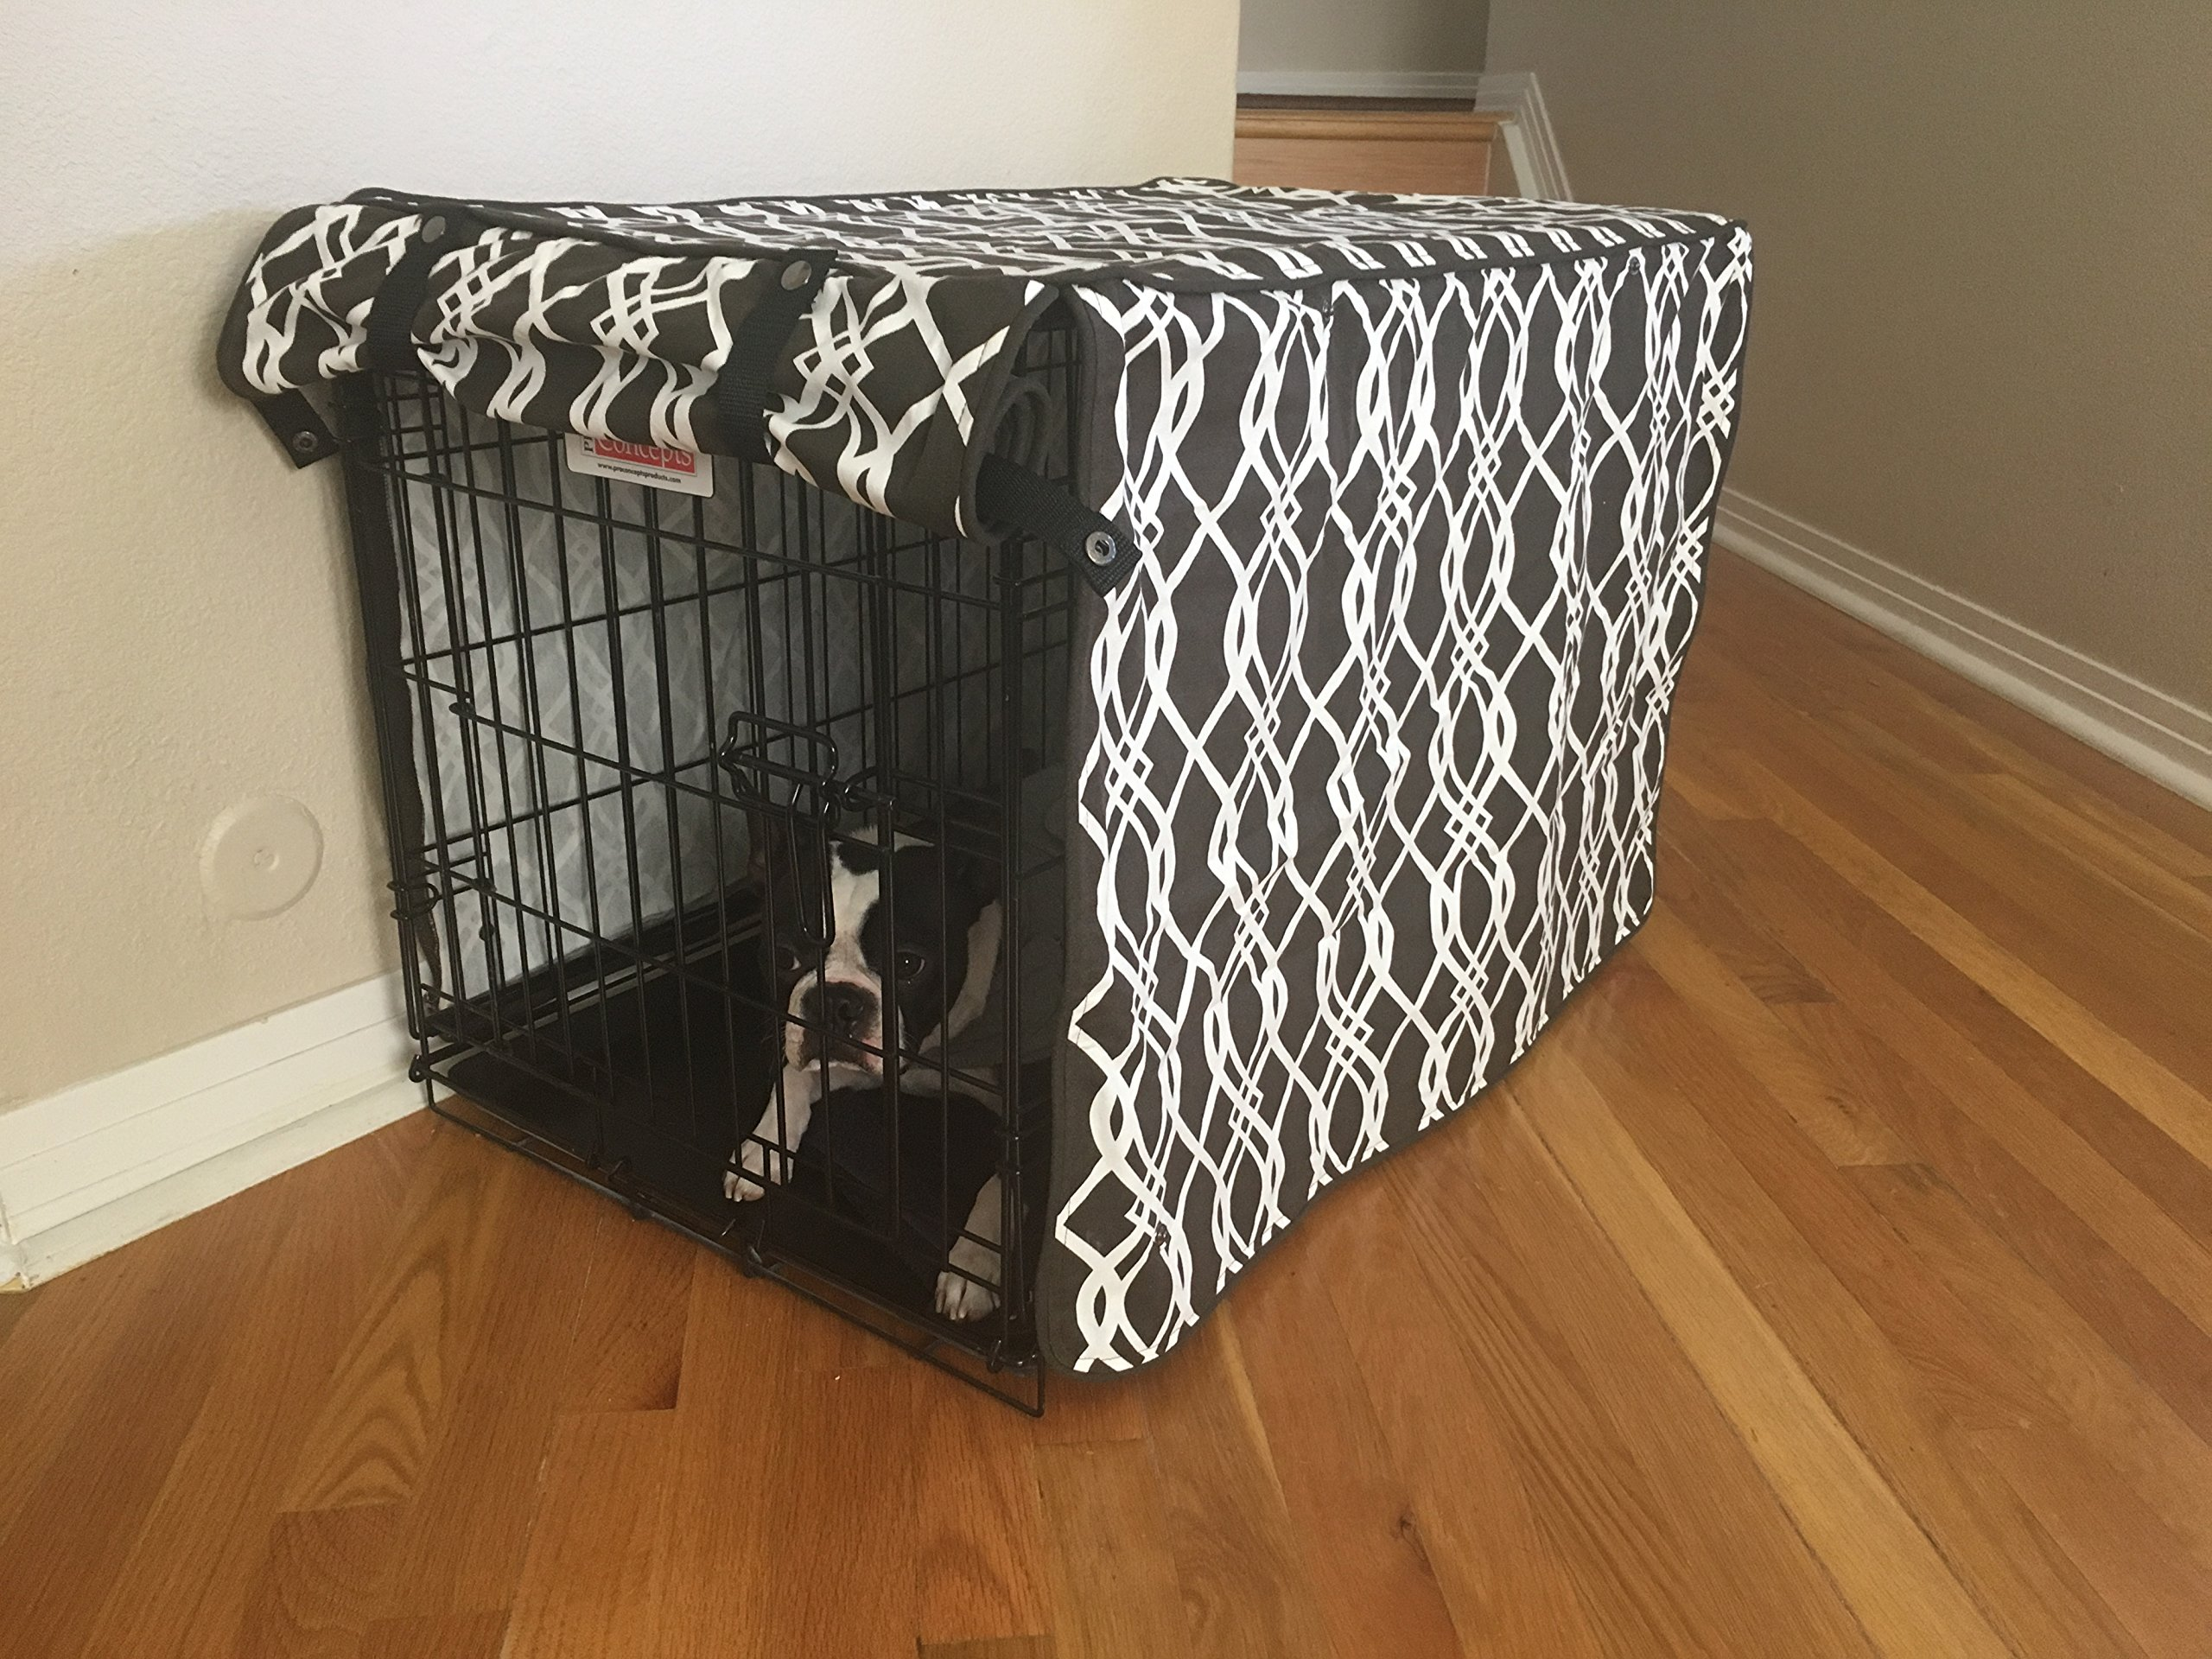 528 Zone Modern Brown & White Designer Dog Pet Wire Kennel Crate Cage House Cover (Small, Medium, Large, XL, XXL) (SMALL 24x18x21)